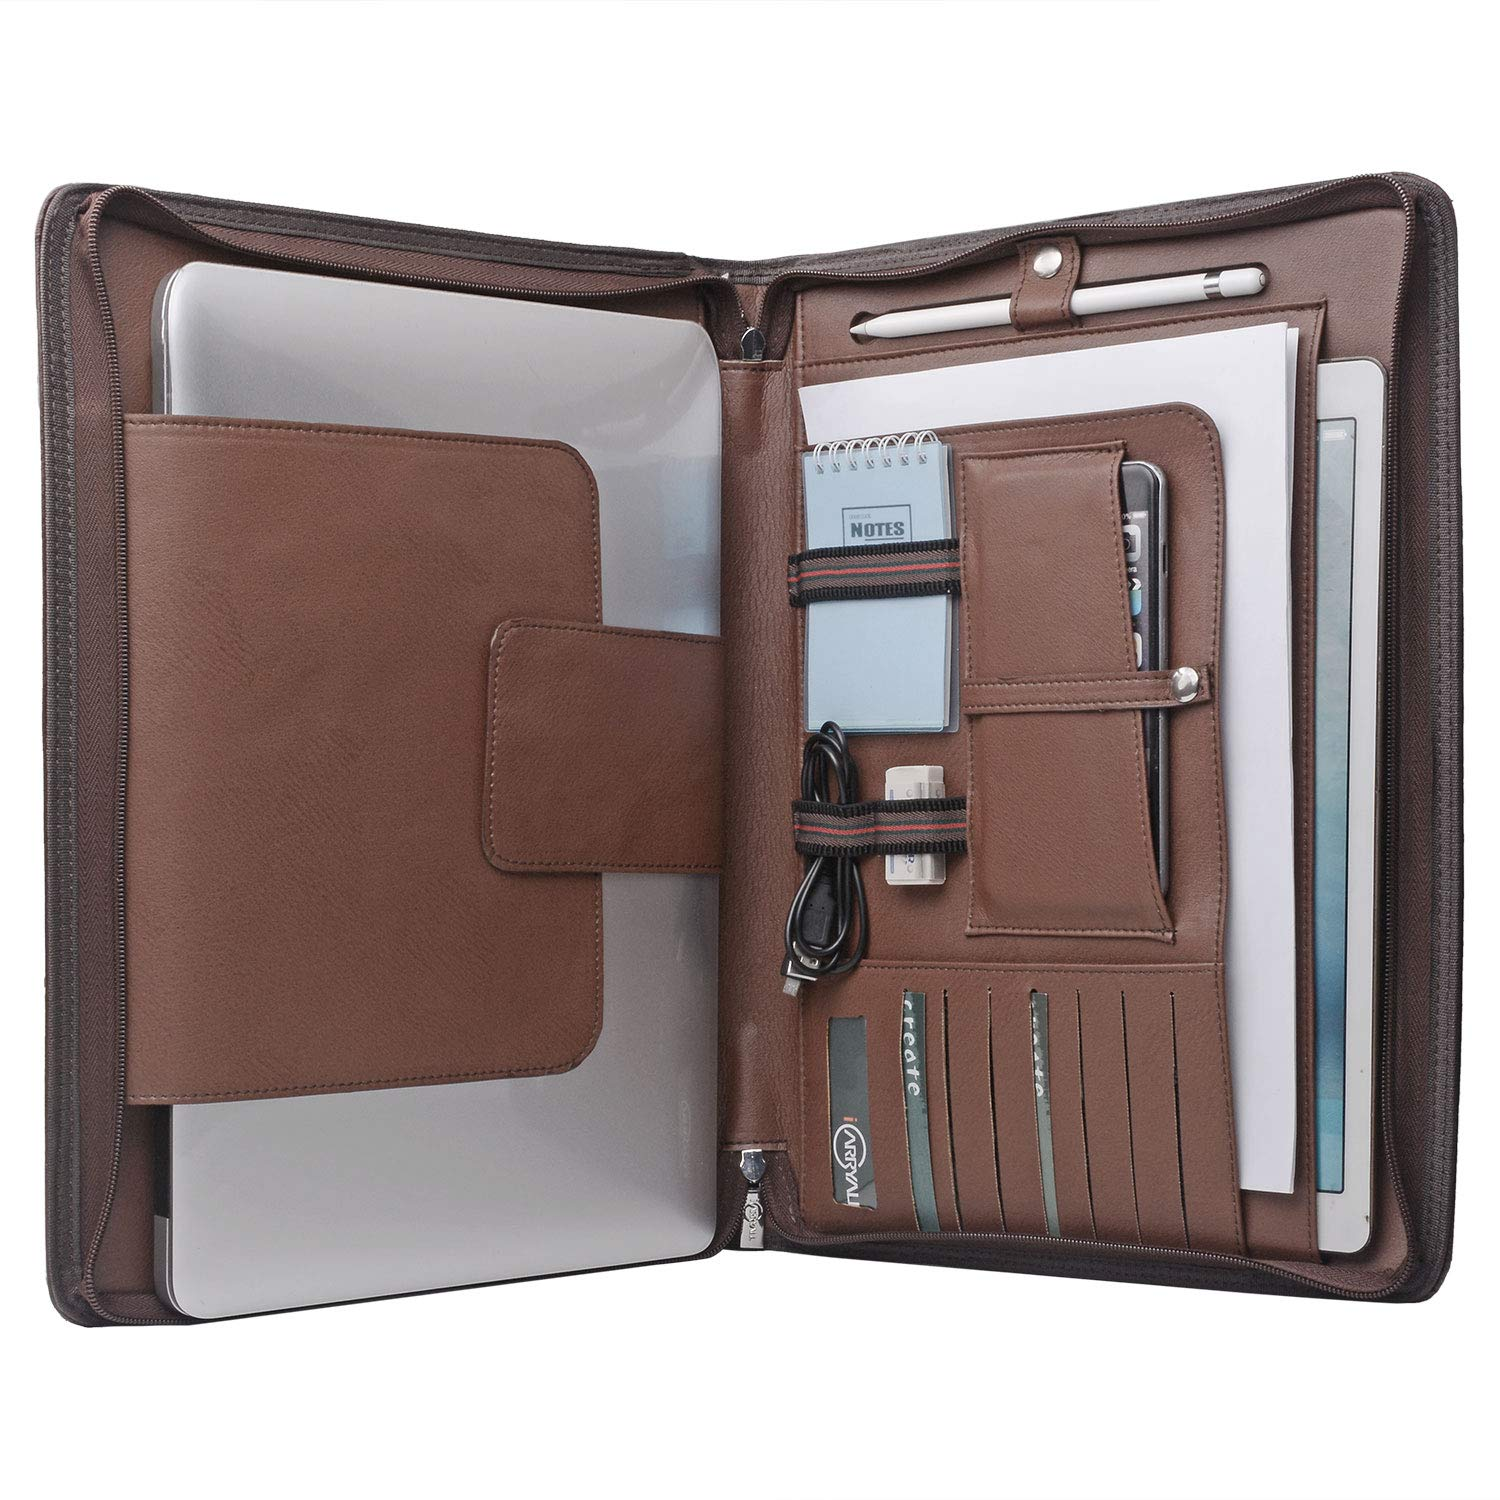 Laptop Portfolio Organizer Case for Surface Book 2 /MacBook Pro 15 inch, MacBook Laptop Folio Case with Organizer Pocket